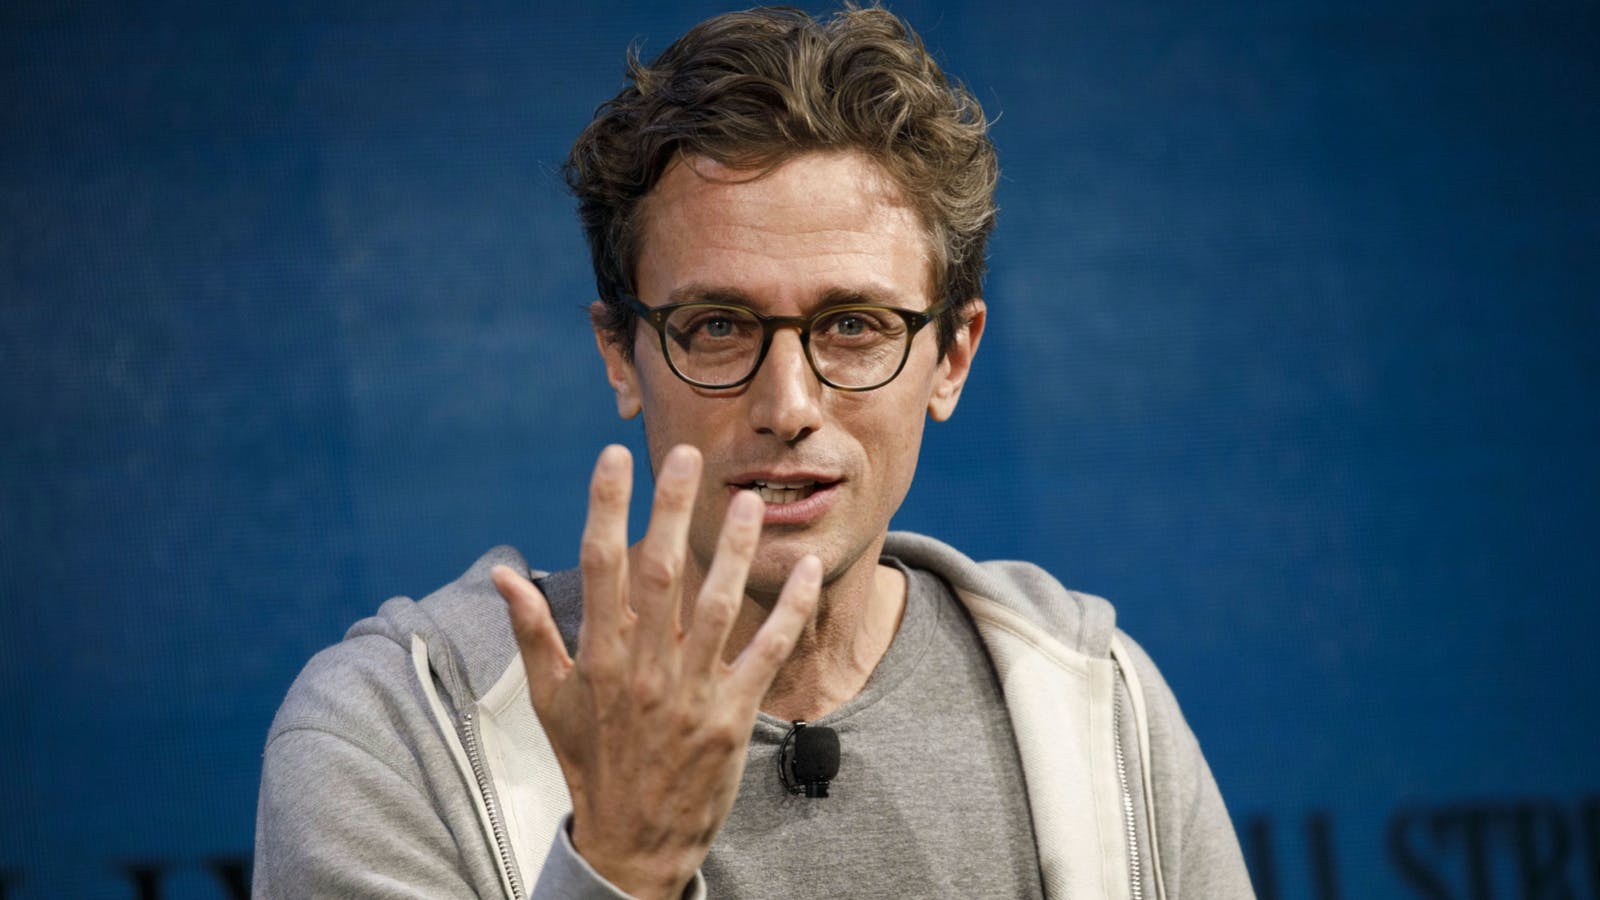 Jonah Peretti, founder and chief executive officer of BuzzFeed. Photo by Bloomberg